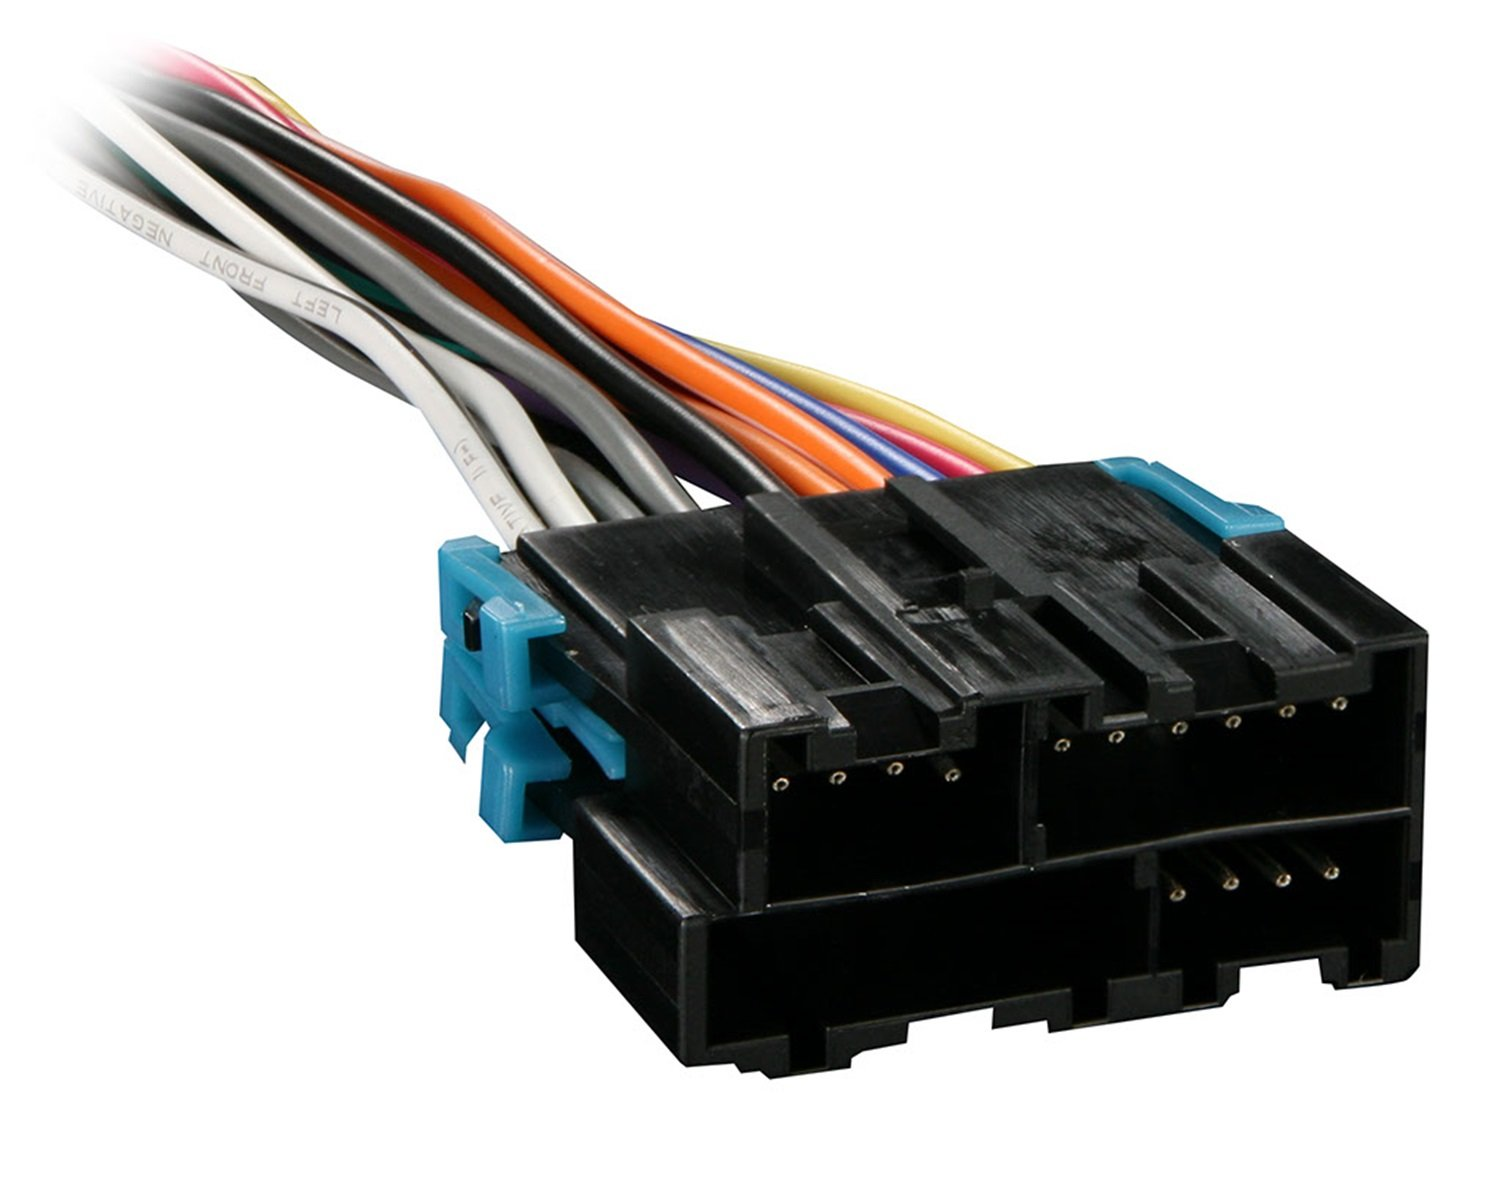 61 CwjZt1hL._SL1500_ radio wiring harnesses amazon com wiring harness for car stereo installation at gsmx.co